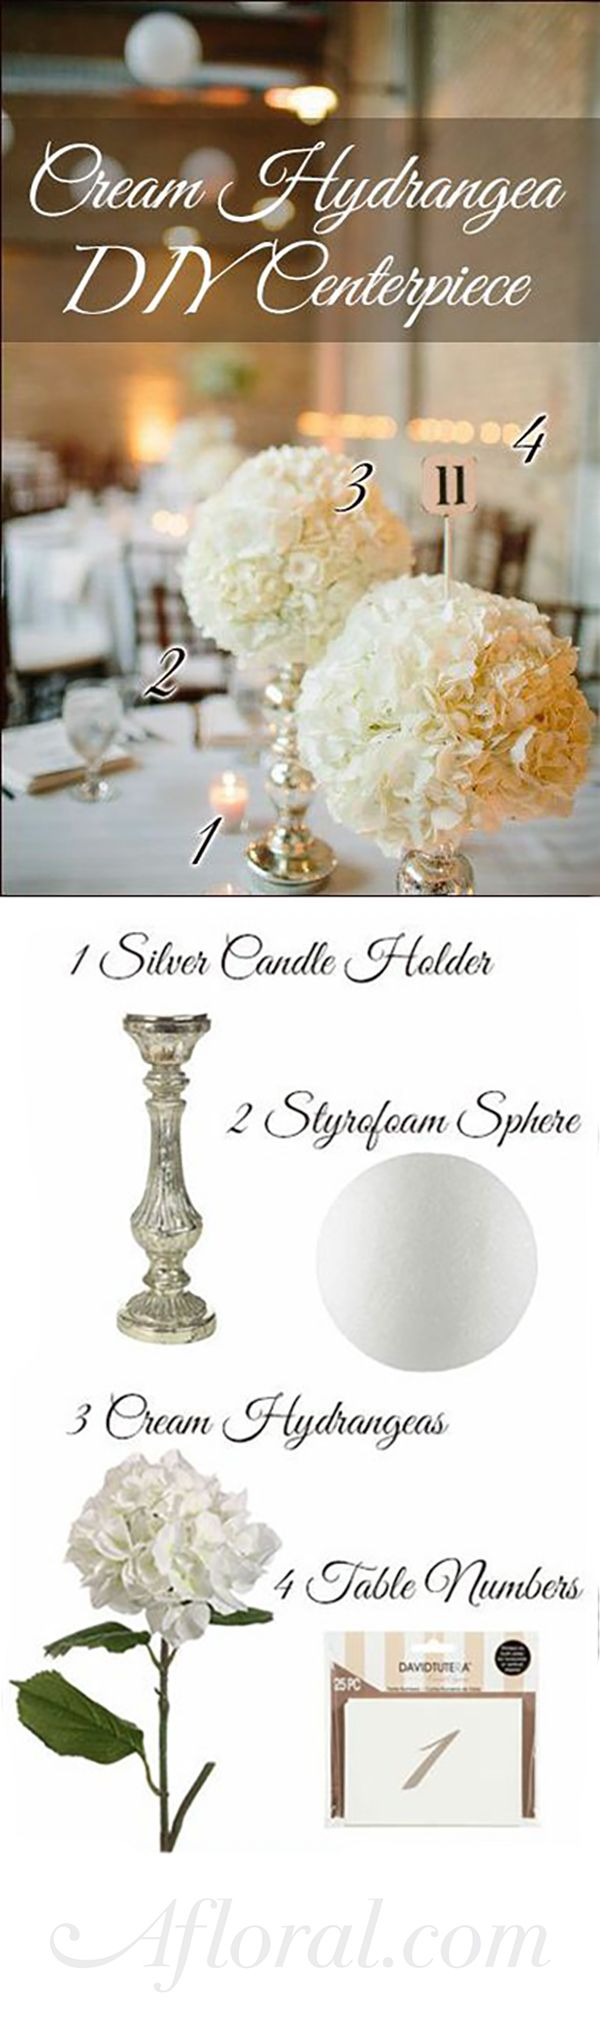 Best 25 diy wedding centerpieces ideas on pinterest diy wedding diy hydrangea centerpiece ideas for your wedding reception centerpieces make your own with high solutioingenieria Images